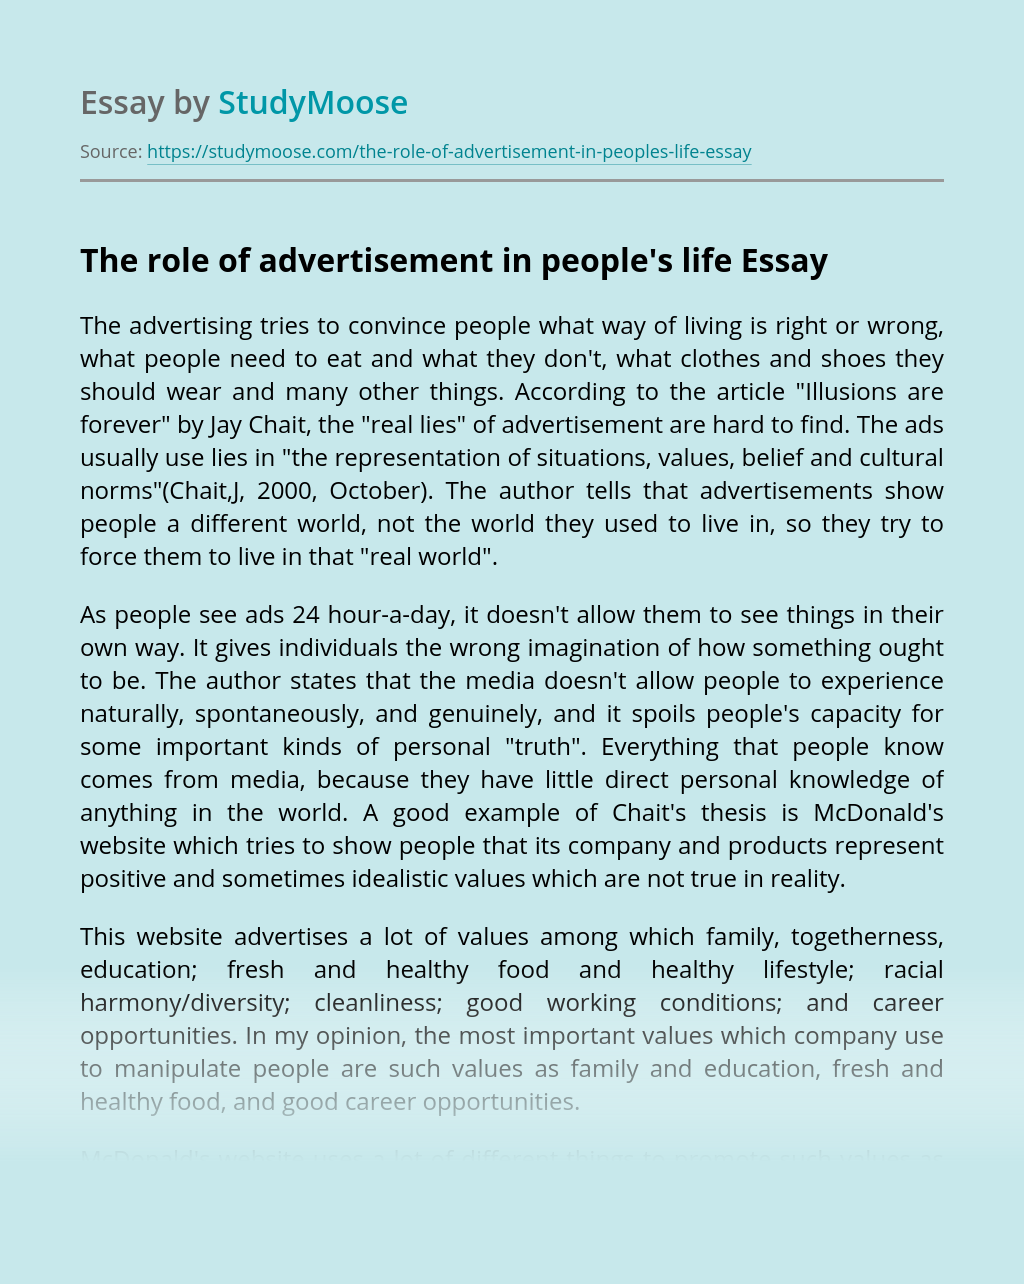 The role of advertisement in people's life